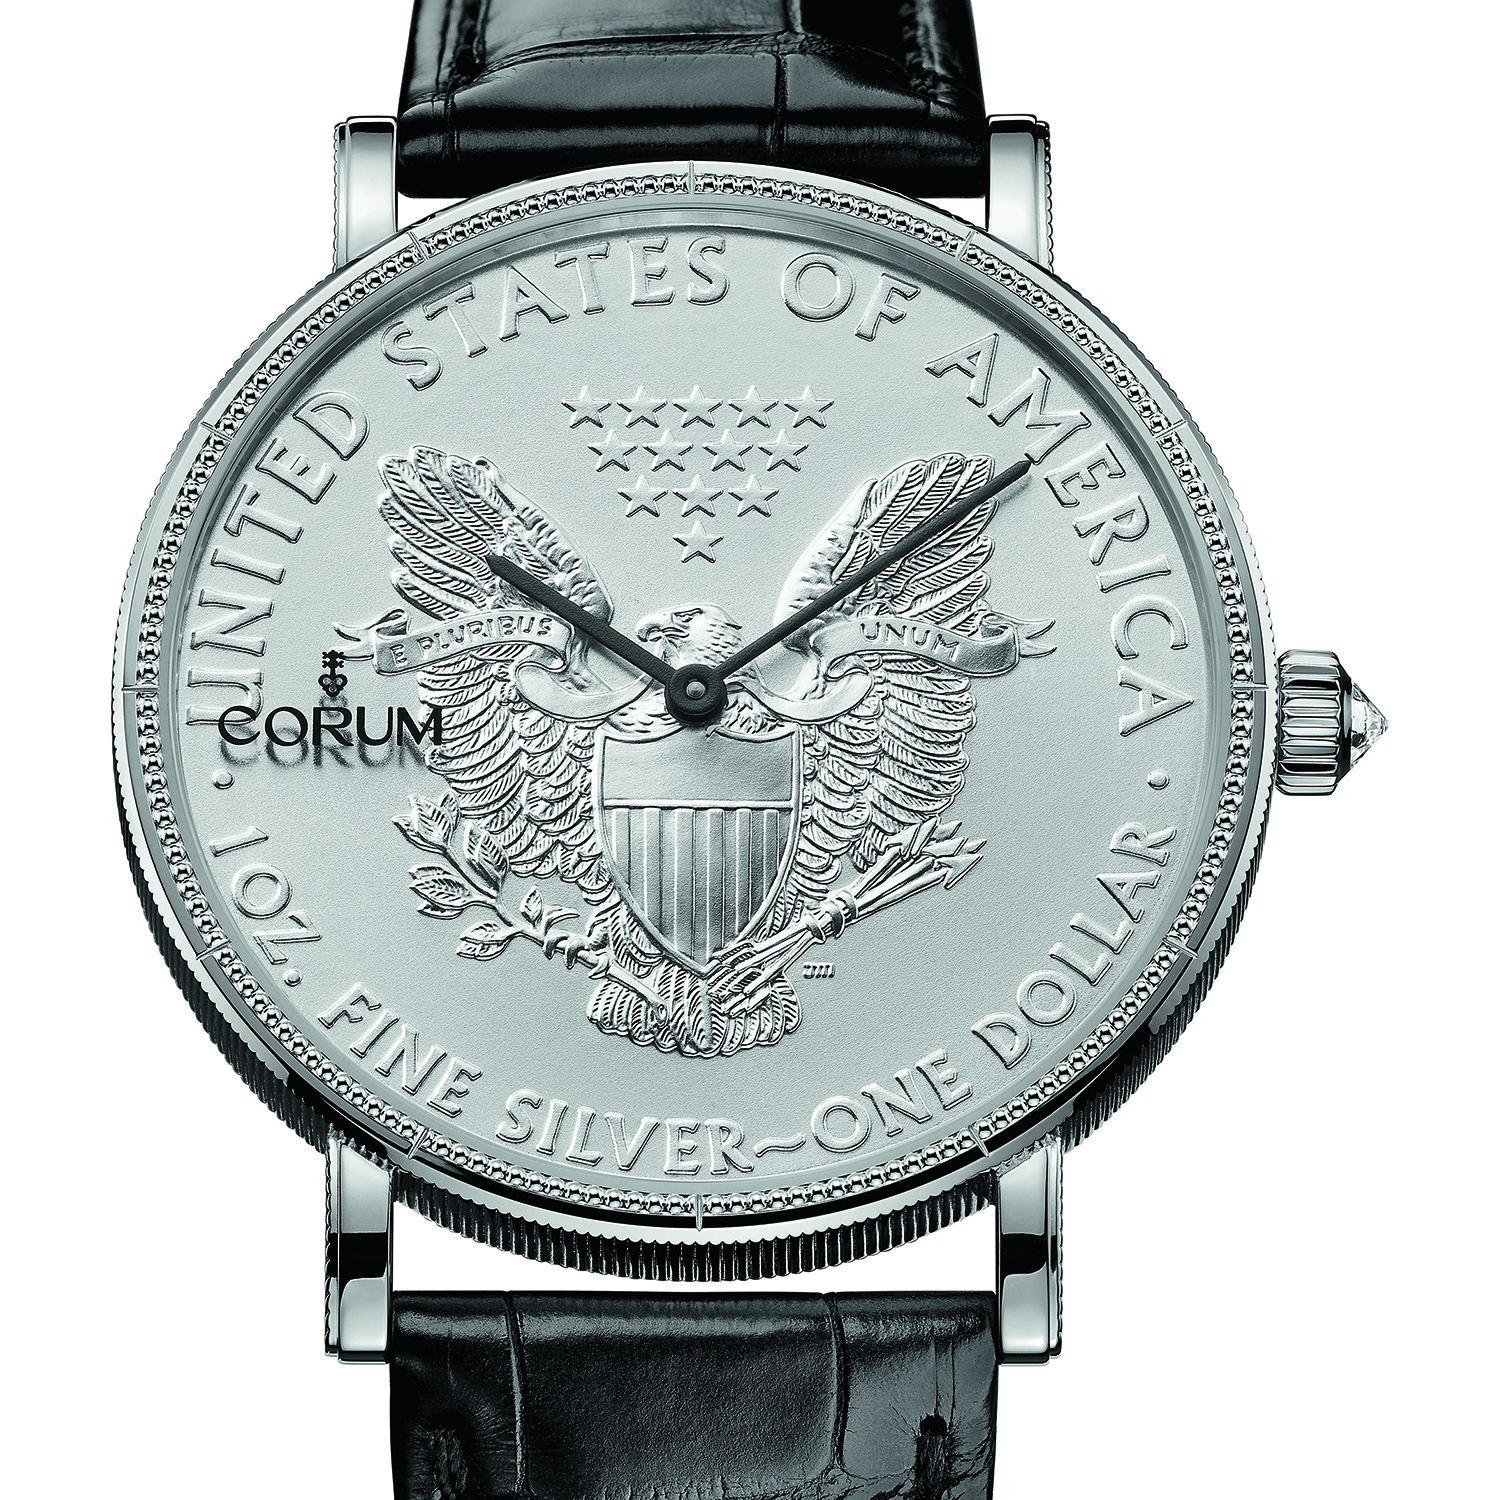 Heritage Coin Watch $1 082.645.01/0001 MU53